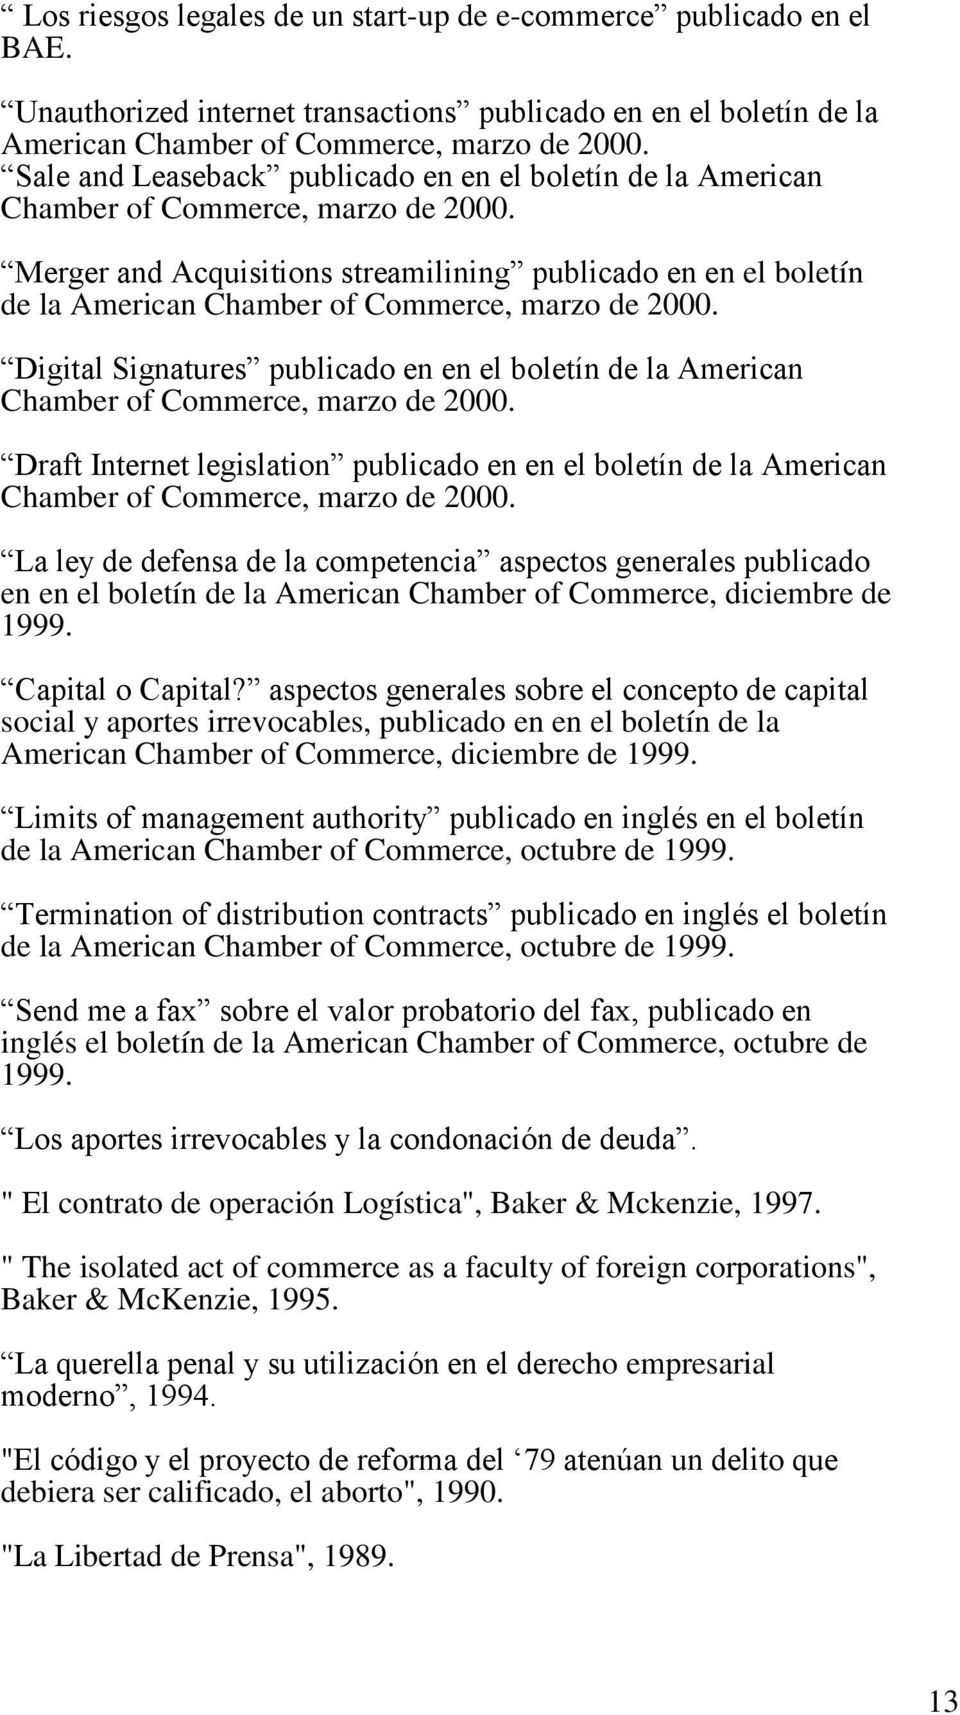 Merger and Acquisitions streamilining publicado en en el boletín de la American Chamber of Commerce, marzo de 2000.